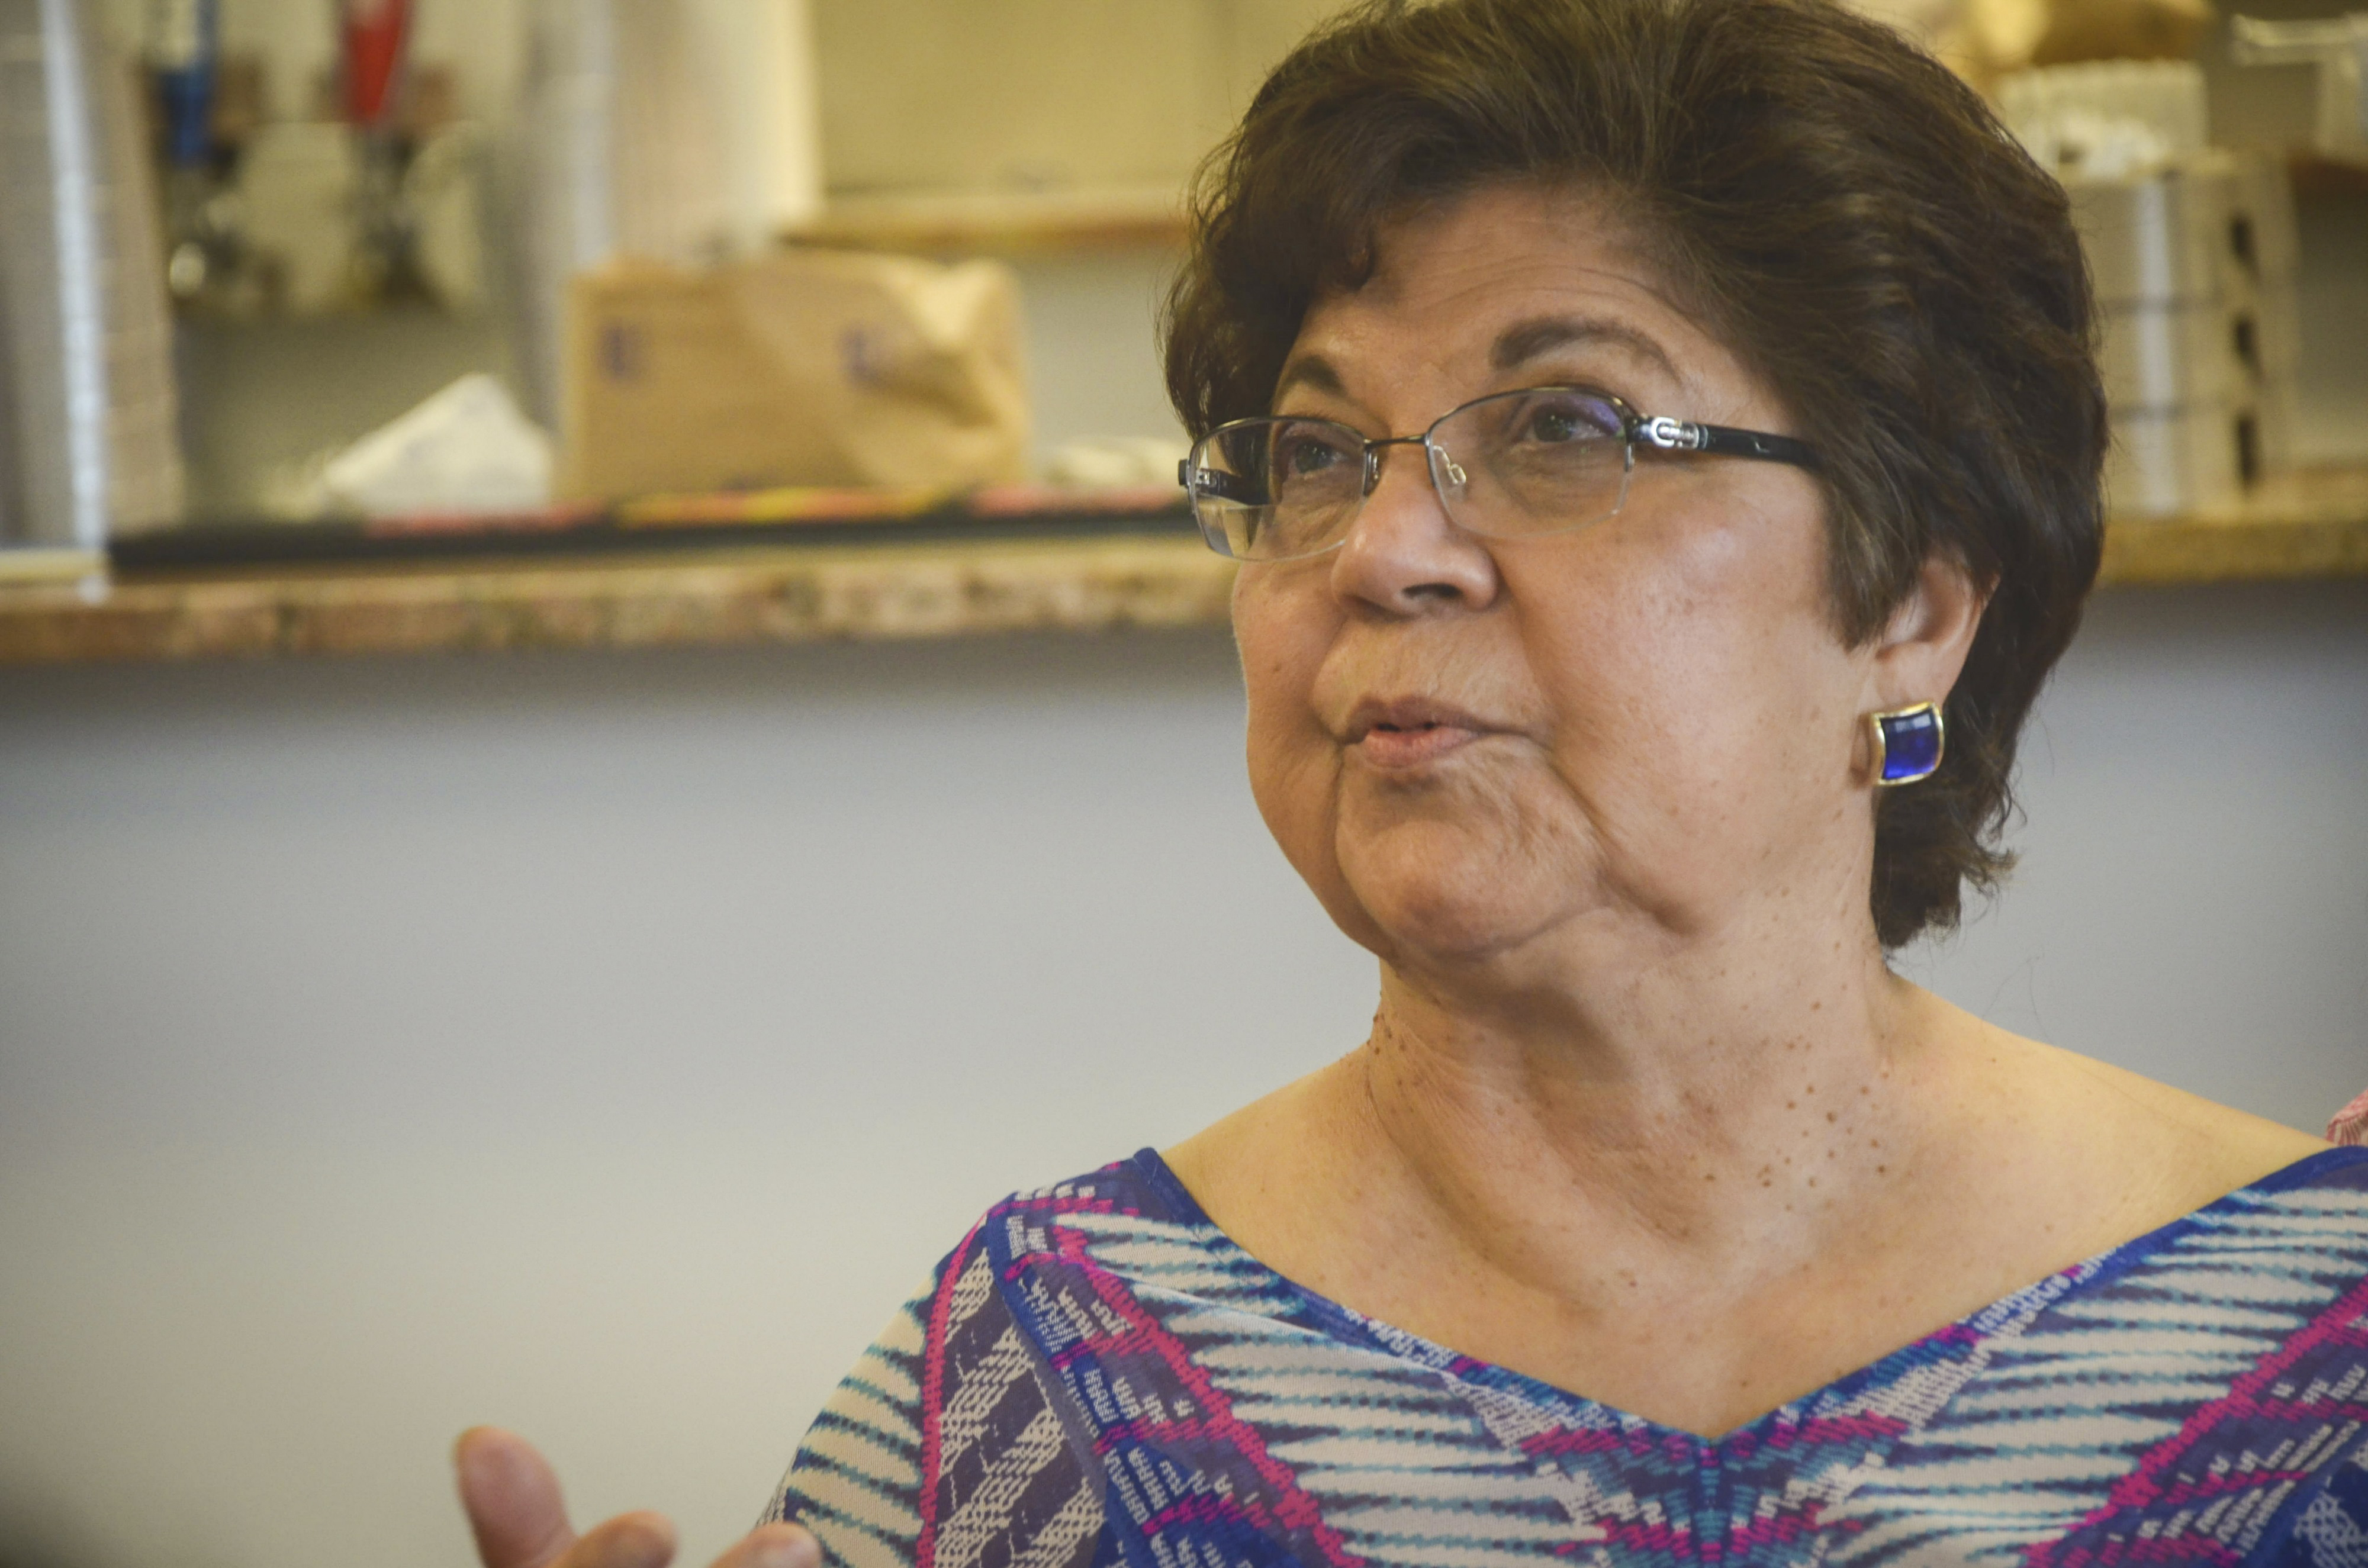 <p>Former state Sen. Polly Baca of Denver attended her 14th Democratic National Convention this summer as a delegate for Democratic presidential nominee Hillary Clinton.</p>